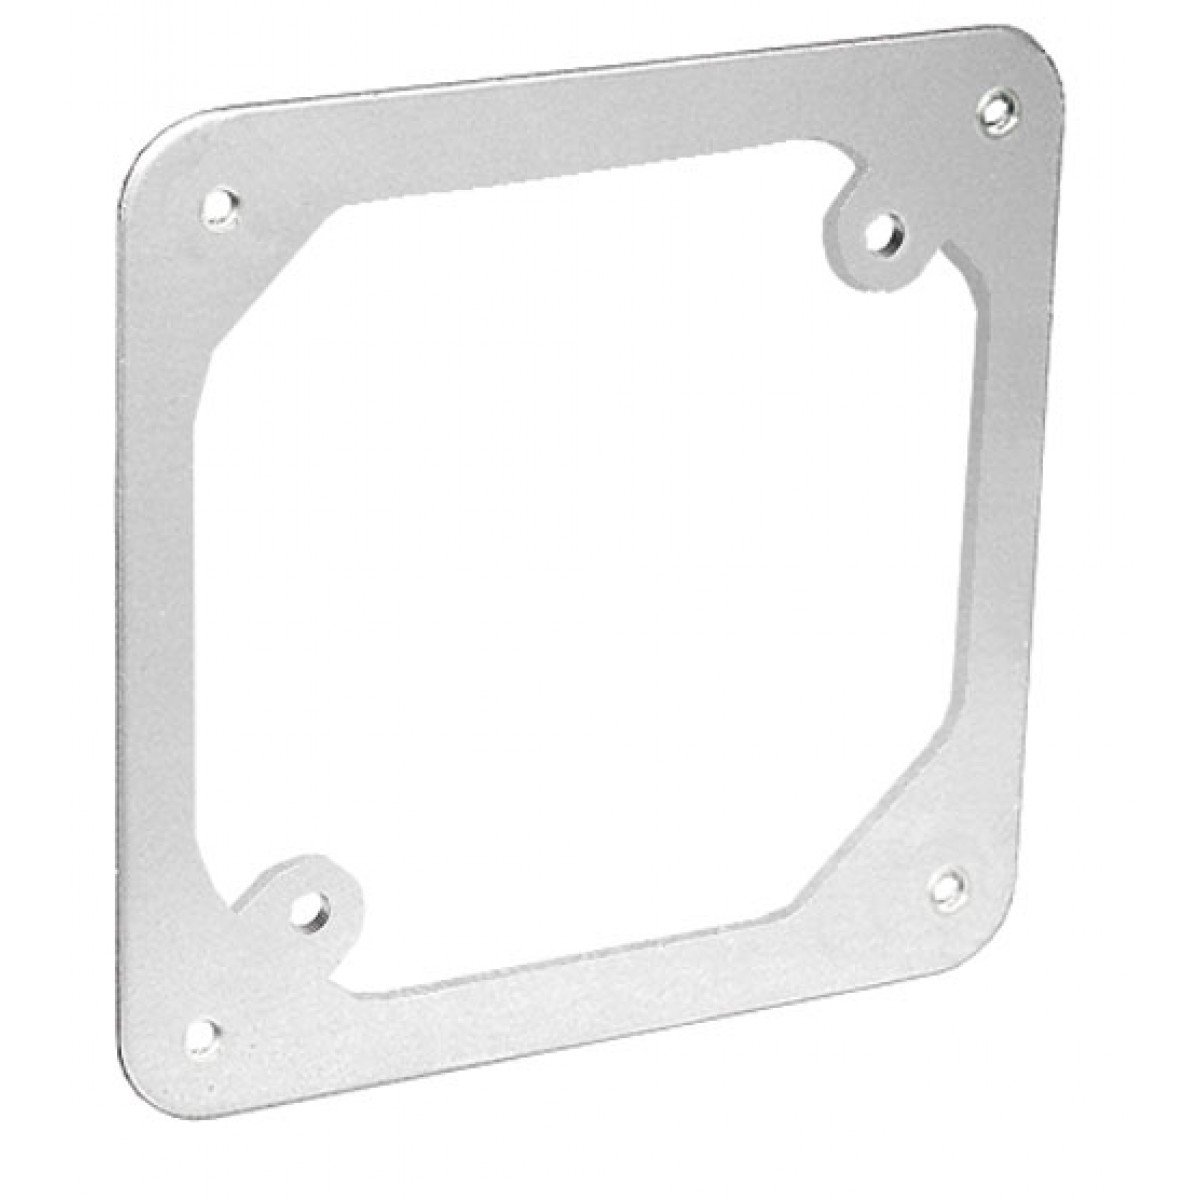 5 Pcs, Zinc Plated Steel 4 Square Cover w/Two 8-32 Mounting Holes, Adapts Octagon/Round Box to 4 Square Mounting Provisions